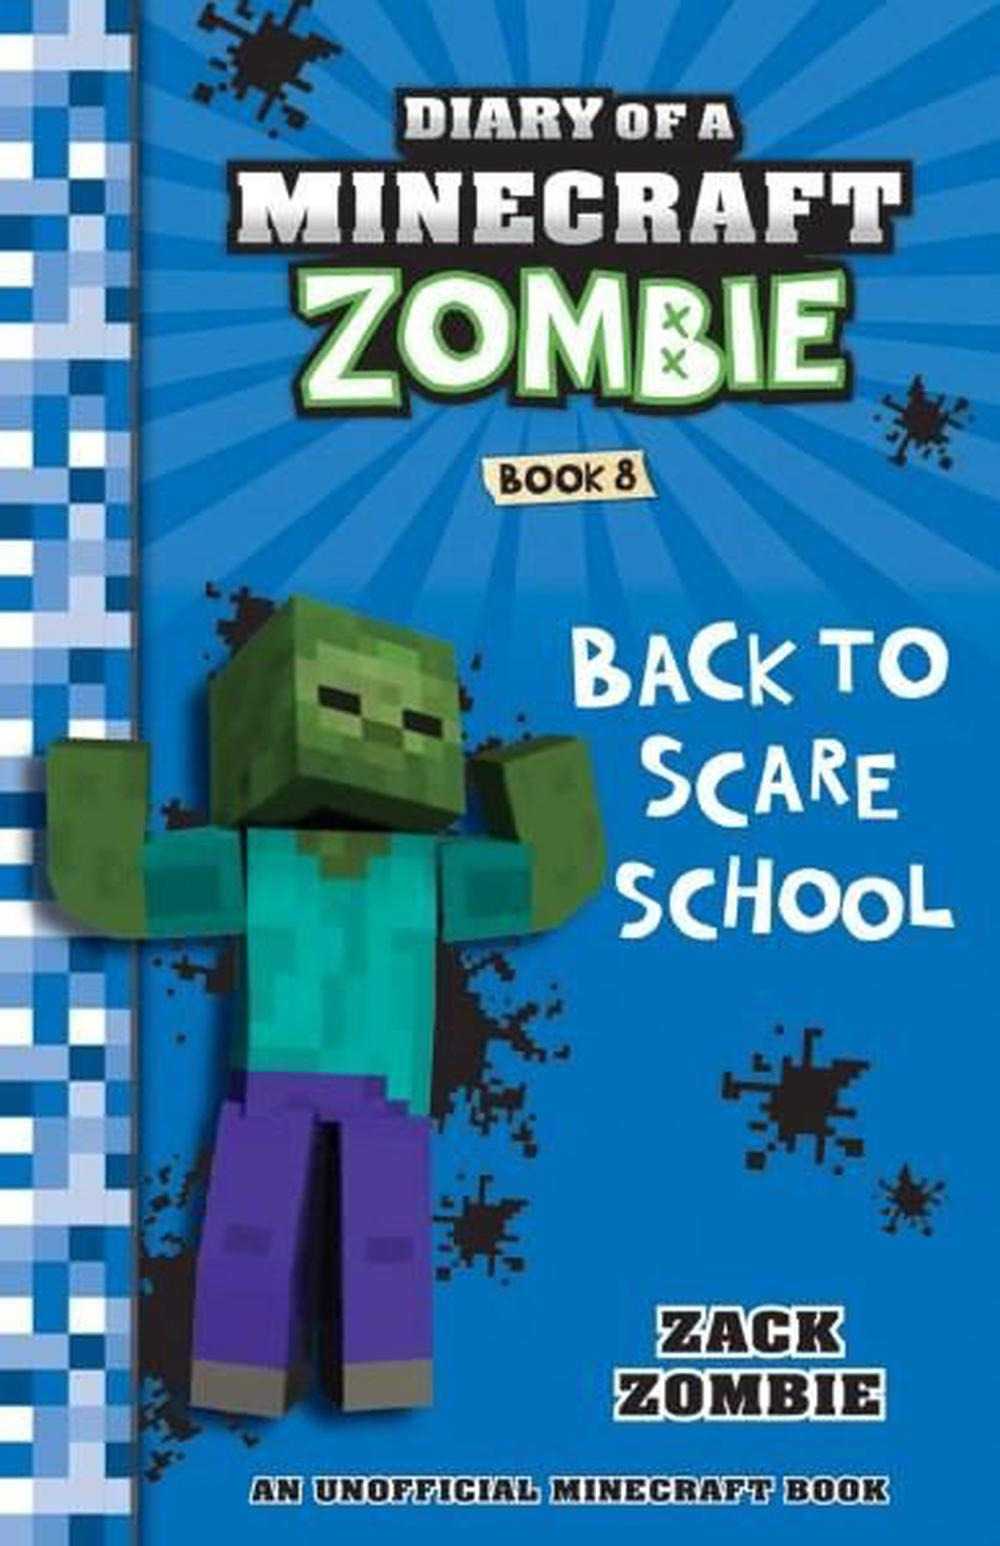 Diary of a Minecraft Zombie #8Back to Scare School